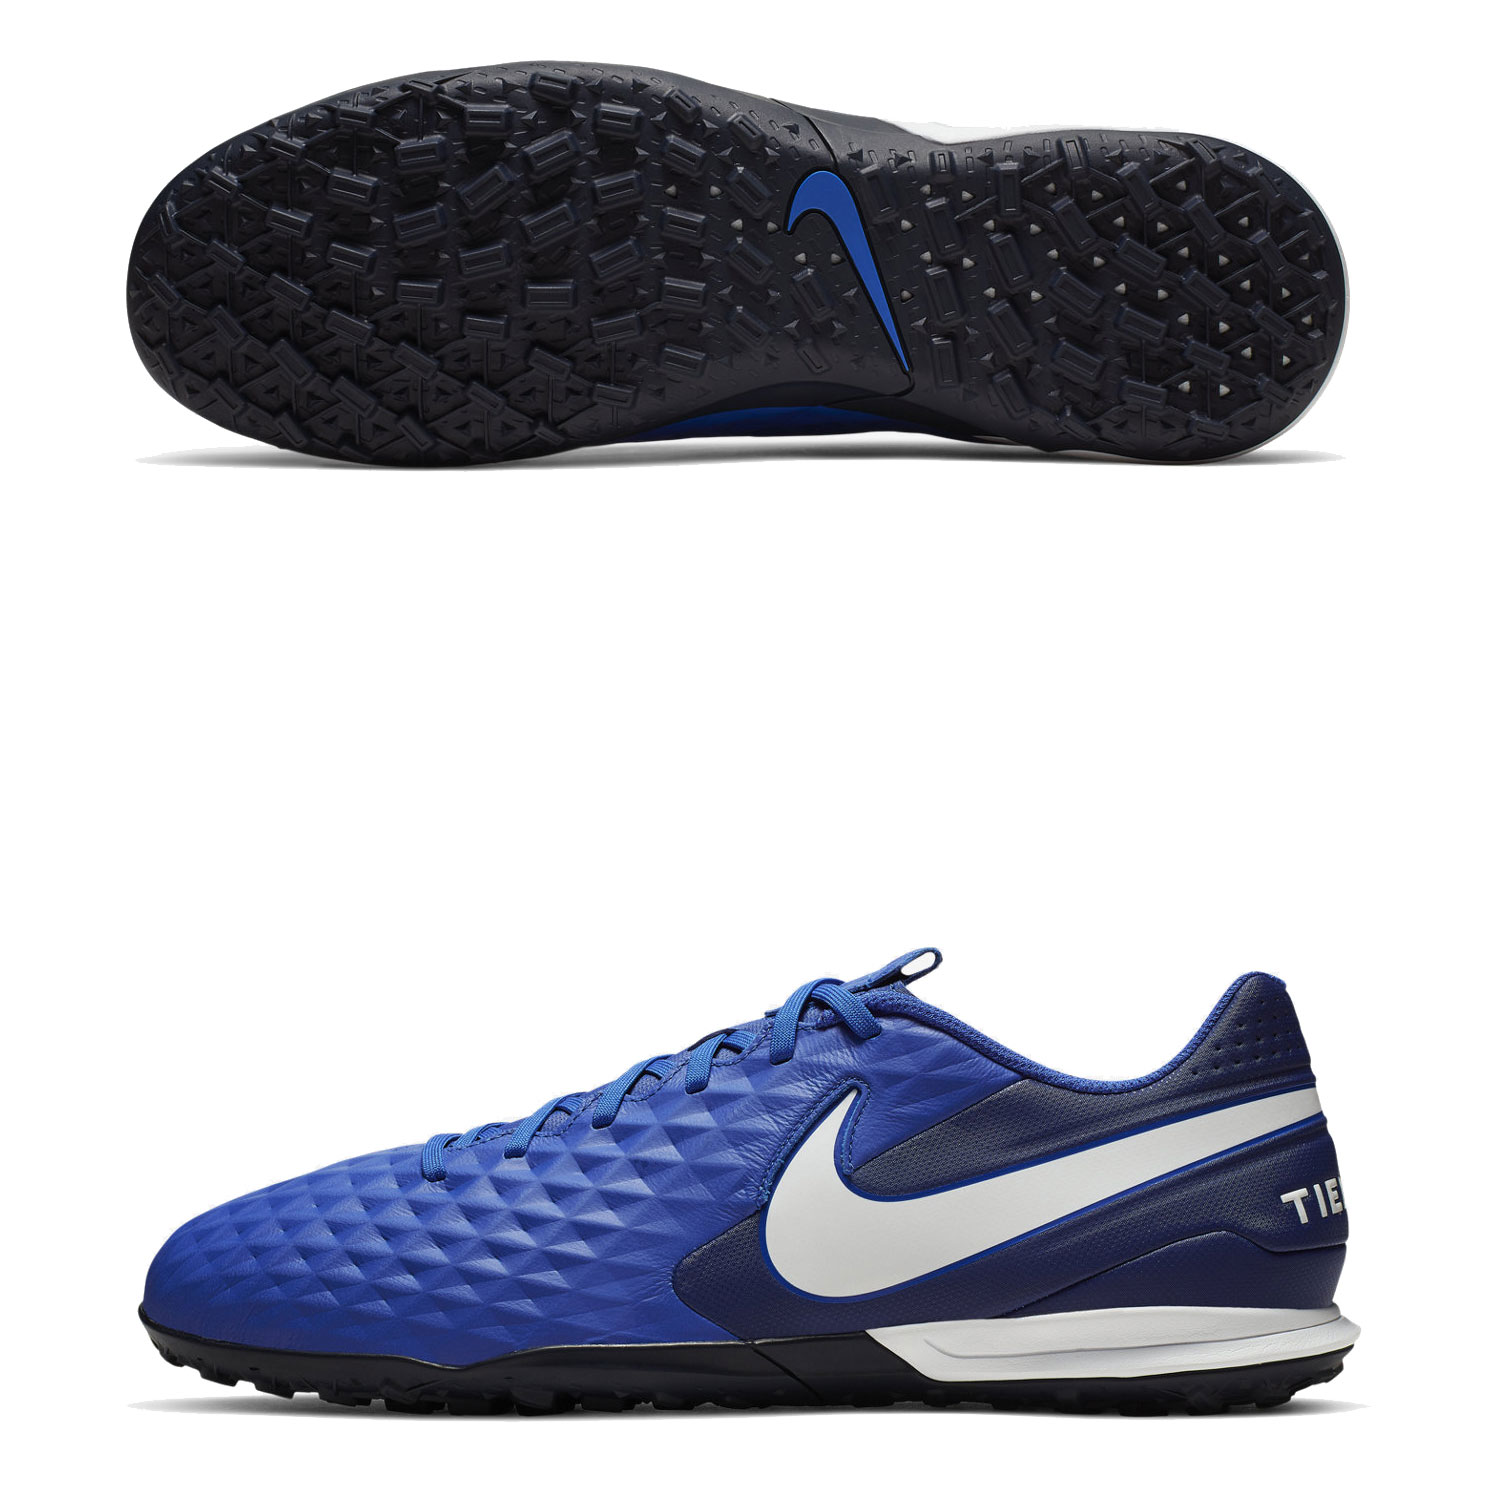 NIKE LEGEND VIII ACADEMY TF AT6100-414